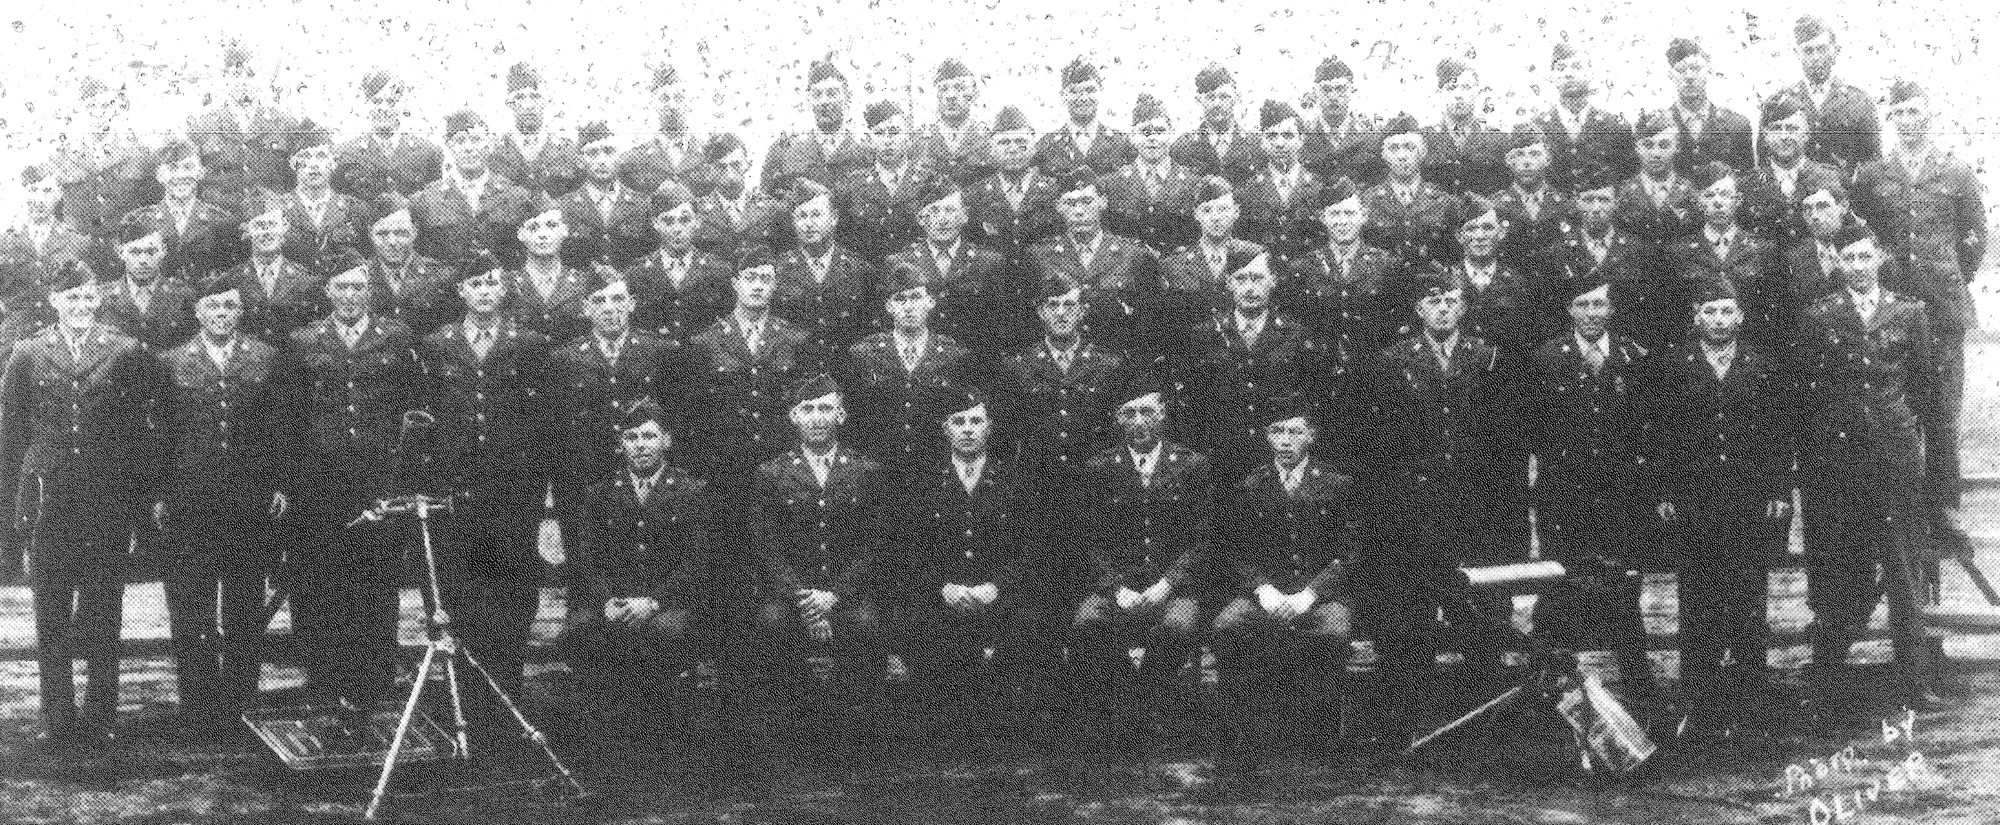 Bertrand Waring's platoon included several Sumterites. Waring, nicknamed Hard Tack, is on the fourth row, ninth from left. Carlisle Lewis is on the fourth row, third from right. Ruben Watford of Turbeville is on the third row, ninth from left. James Prosser of Sumter is on the back row, fourth from left.